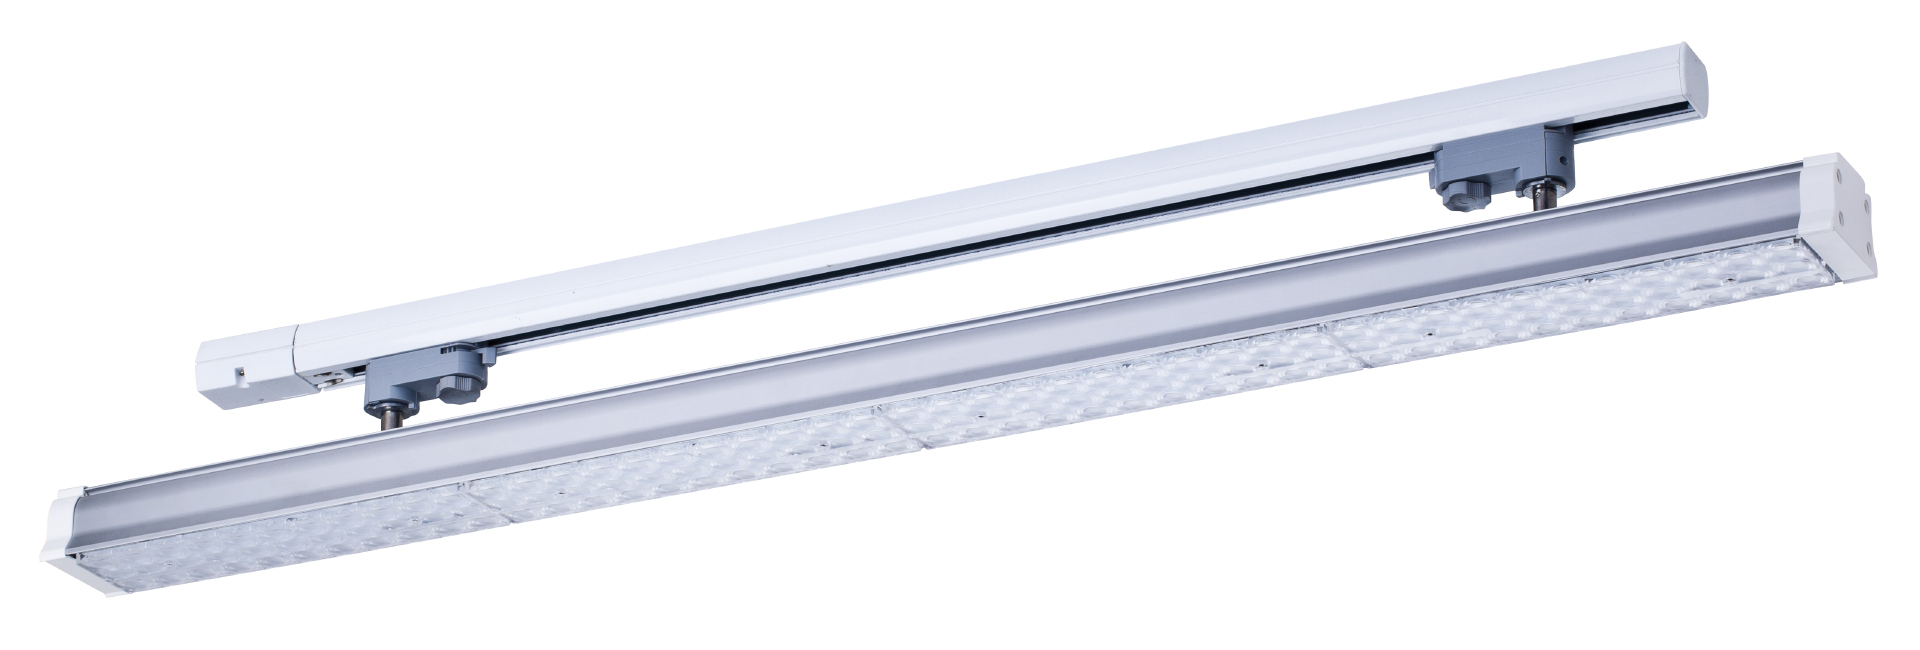 LENs LED Linear Track Light 150cm